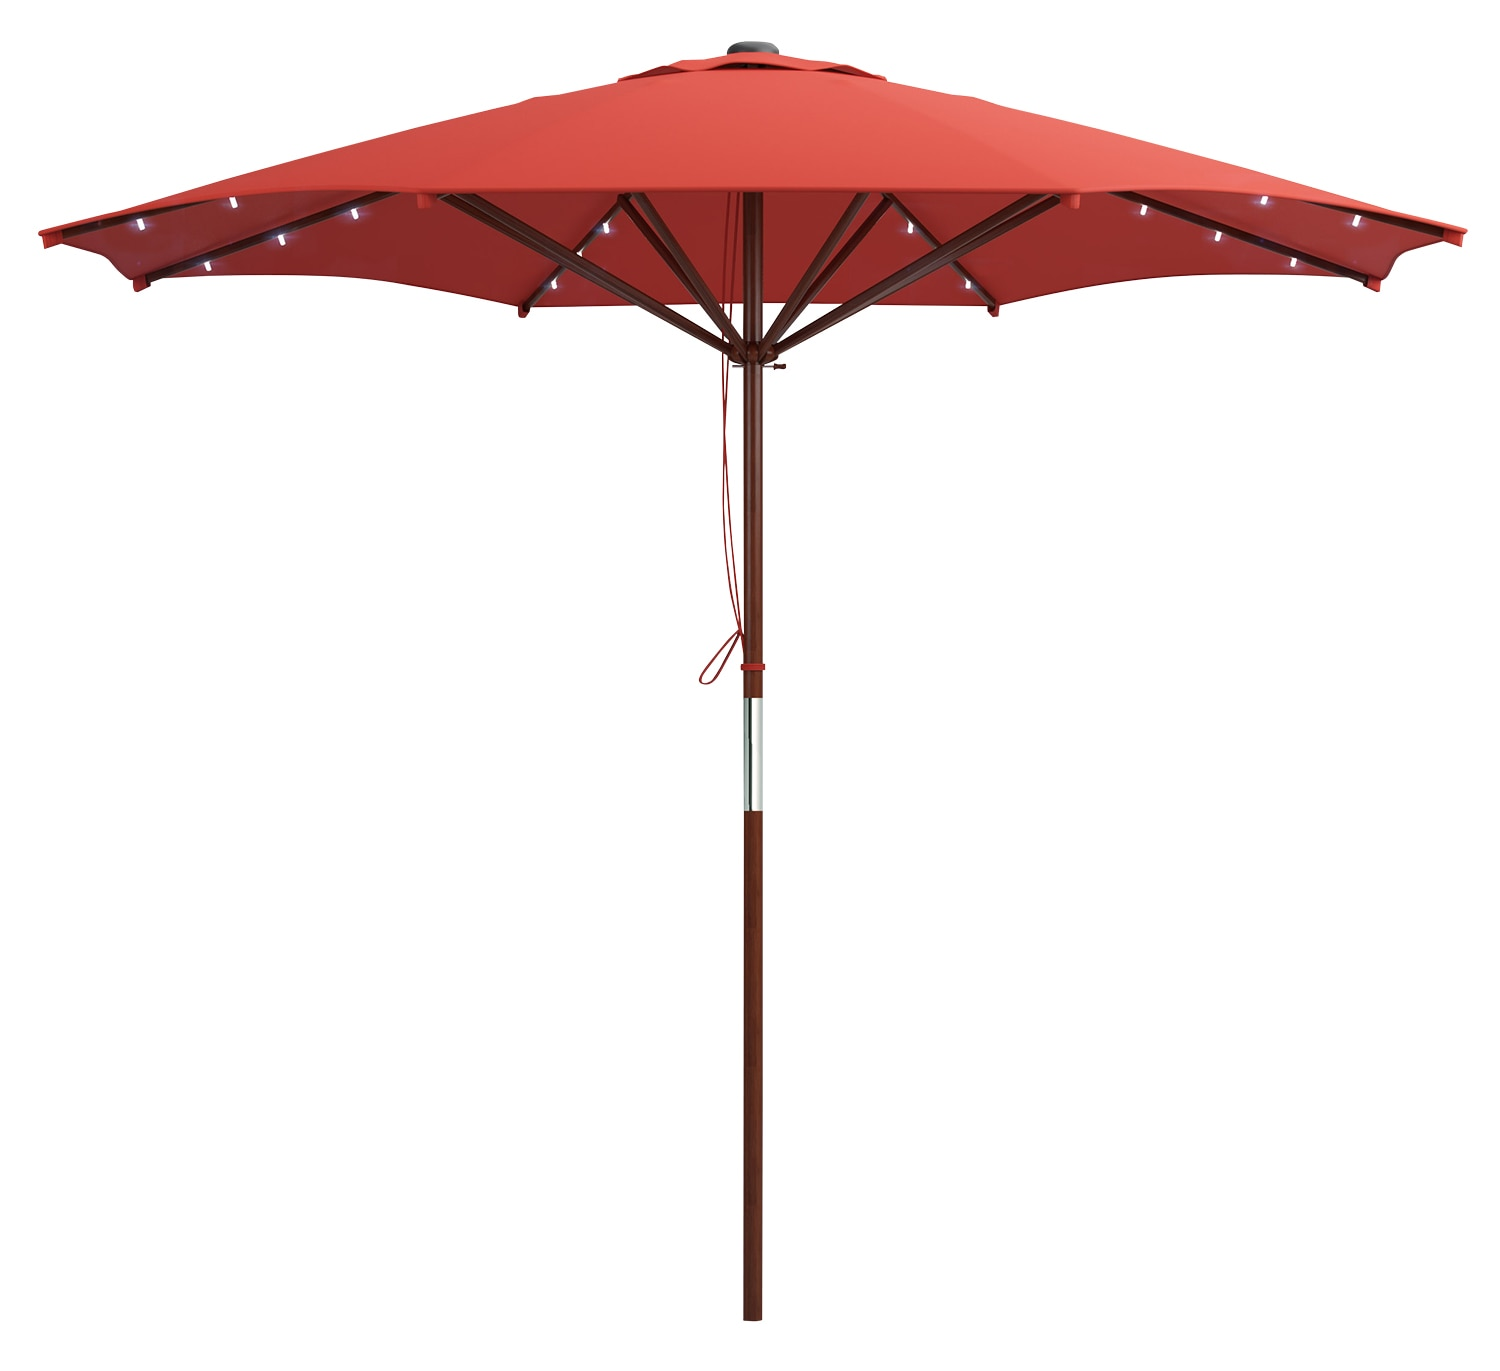 Wood-Frame Patio Umbrella with LED Lighting – Red